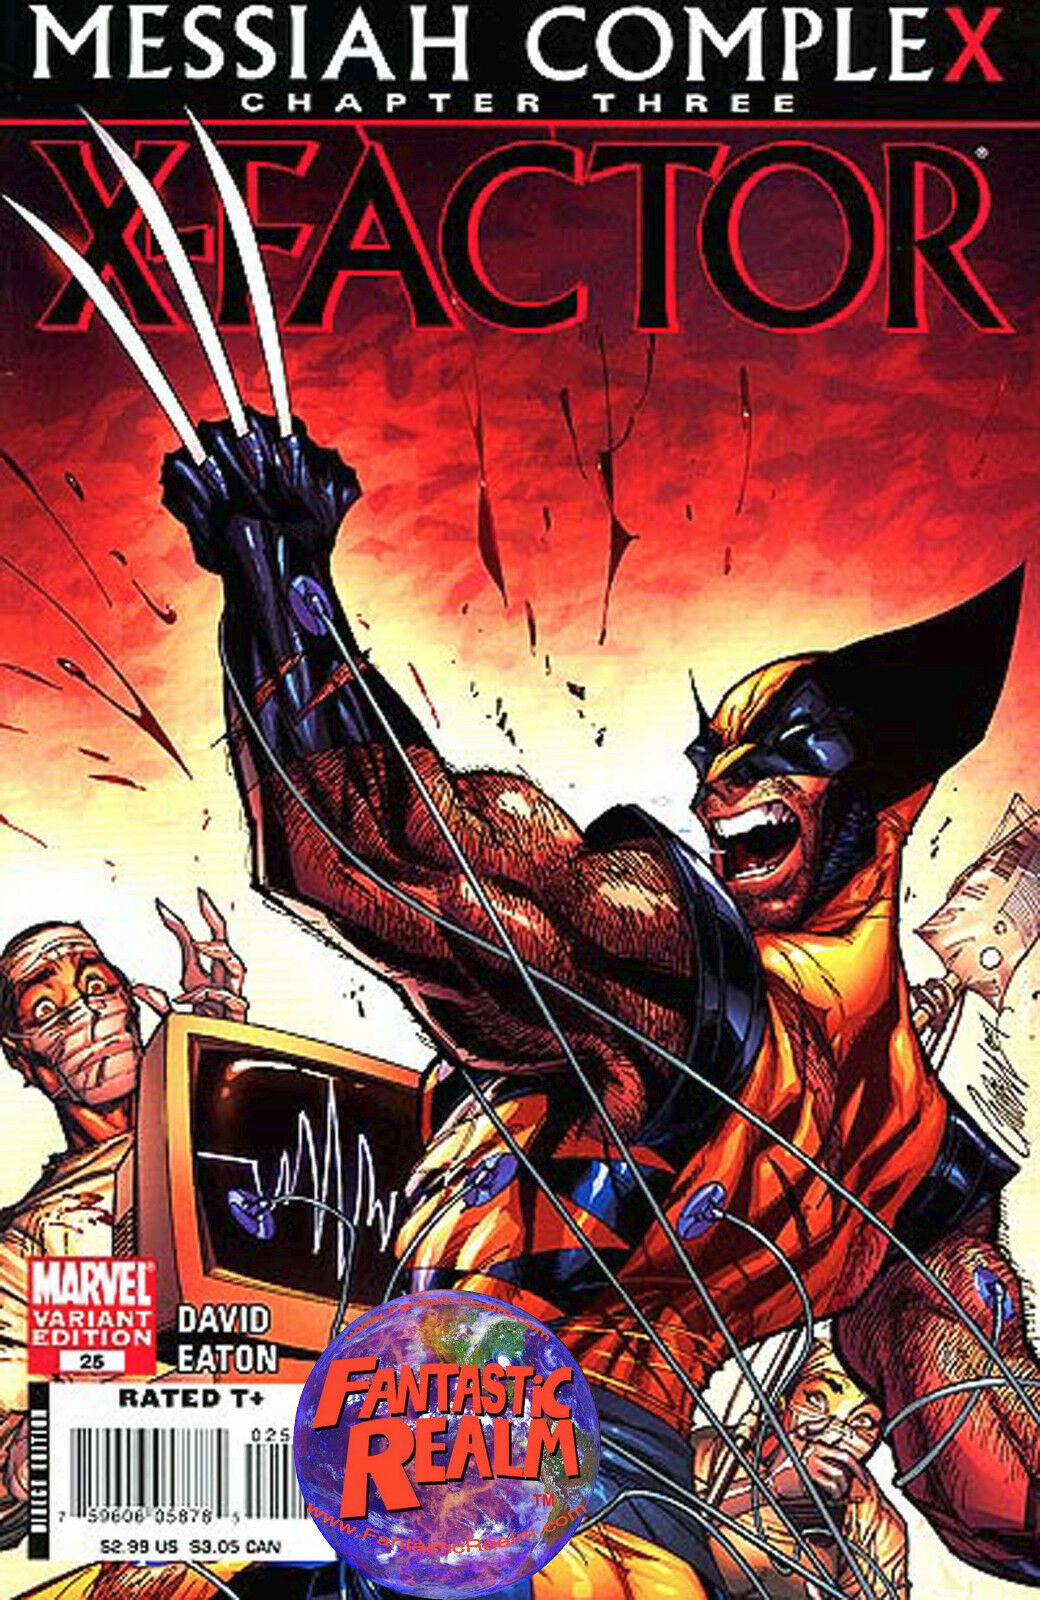 X-FACTOR #25: MESSIAH COMPLEX CHAPTER 3 CAMPBELL VARIANT (2008) MARVEL COMICS